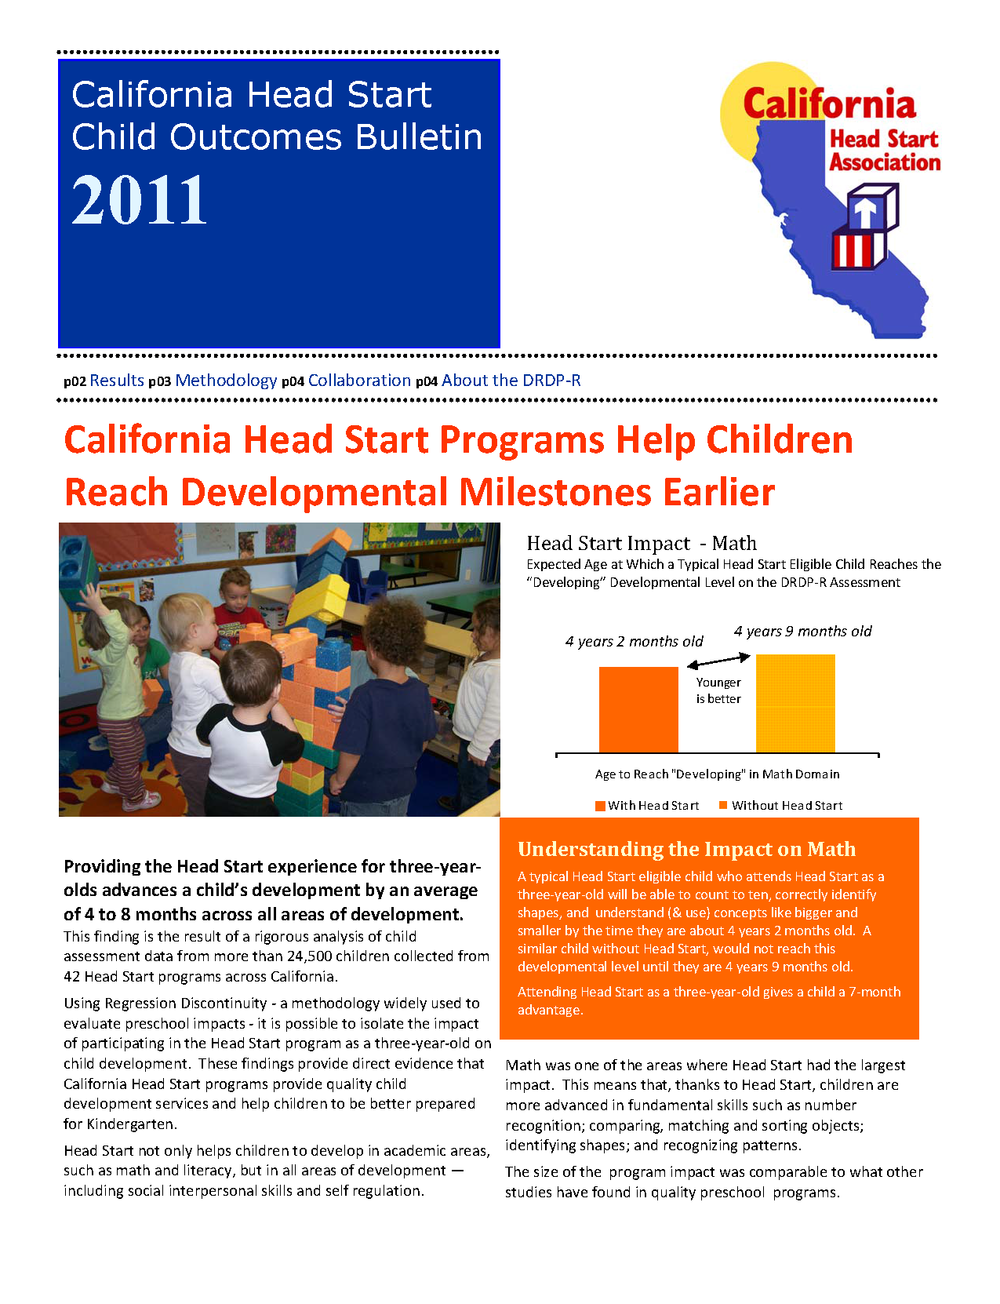 California Head Start Child Outcomes Bulletin 2011